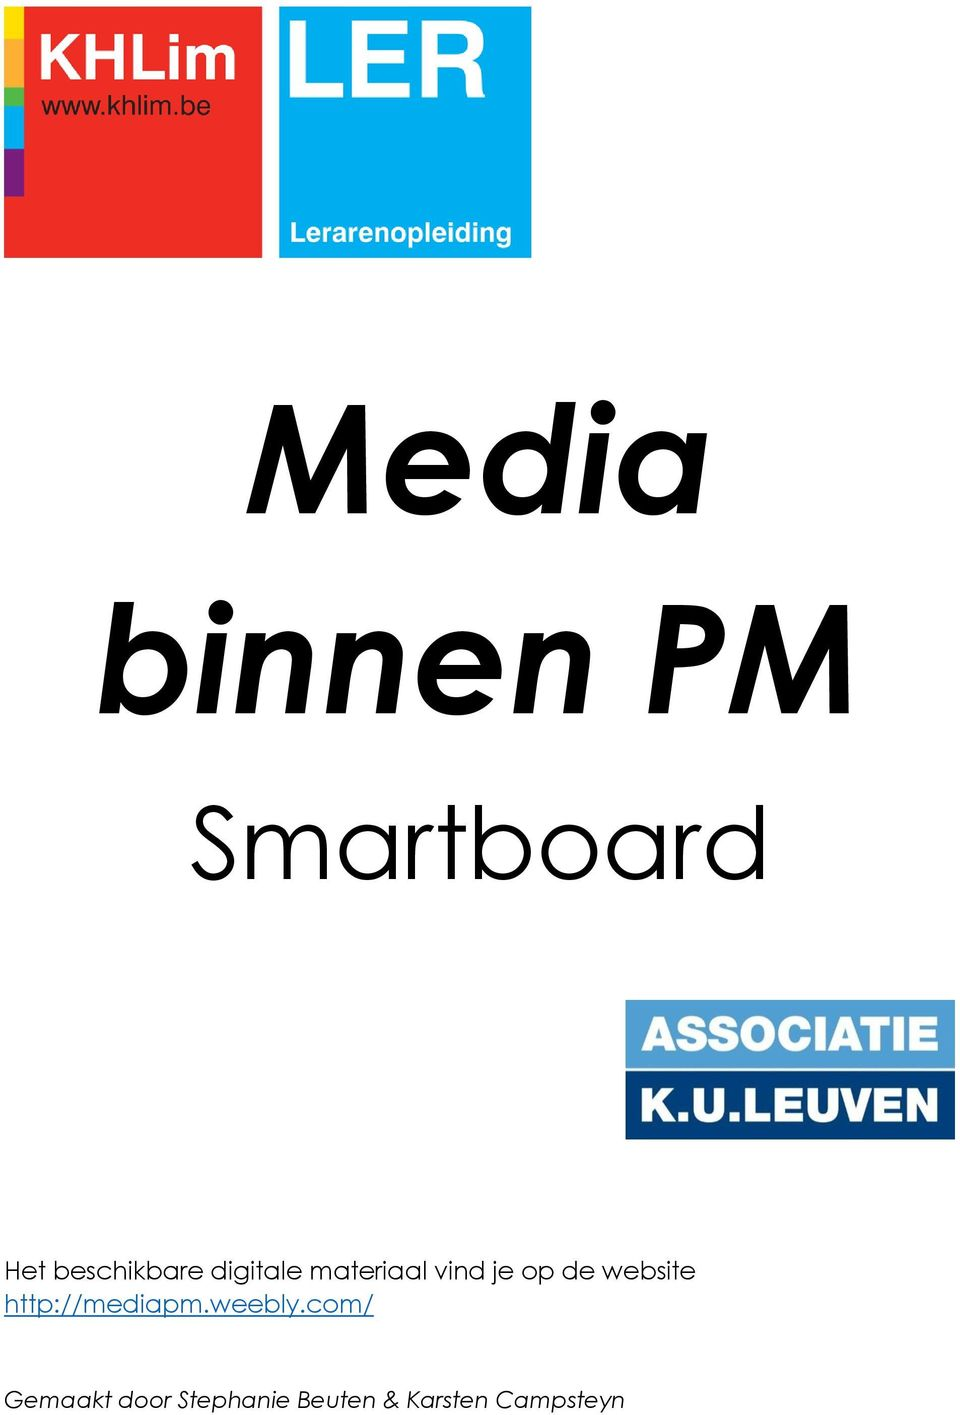 op de website http://mediapm.weebly.